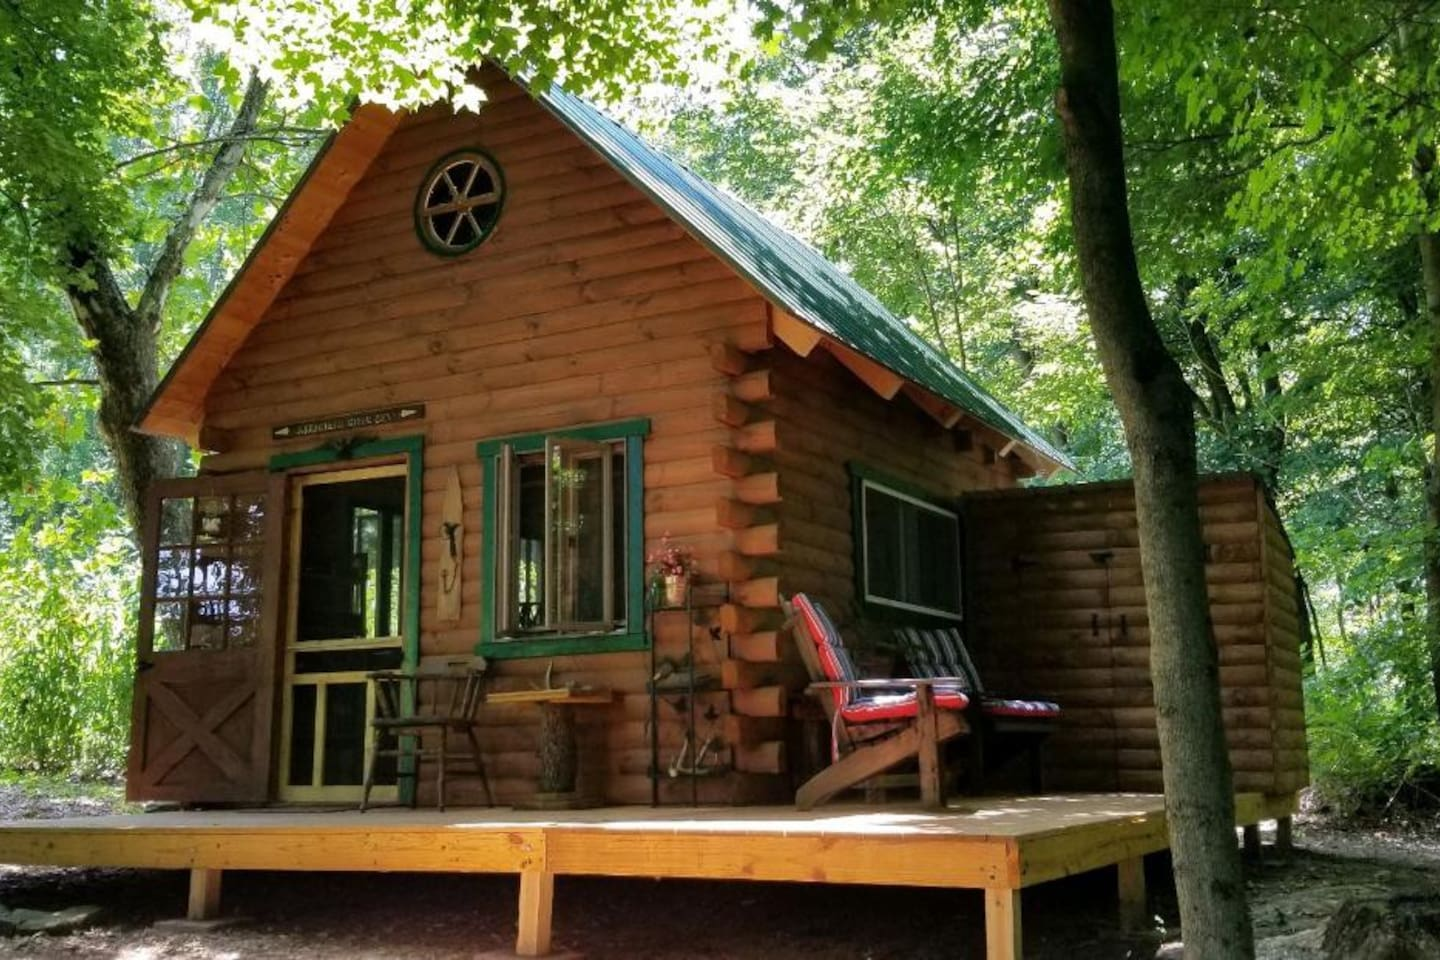 Off-grid cabin in the woods.